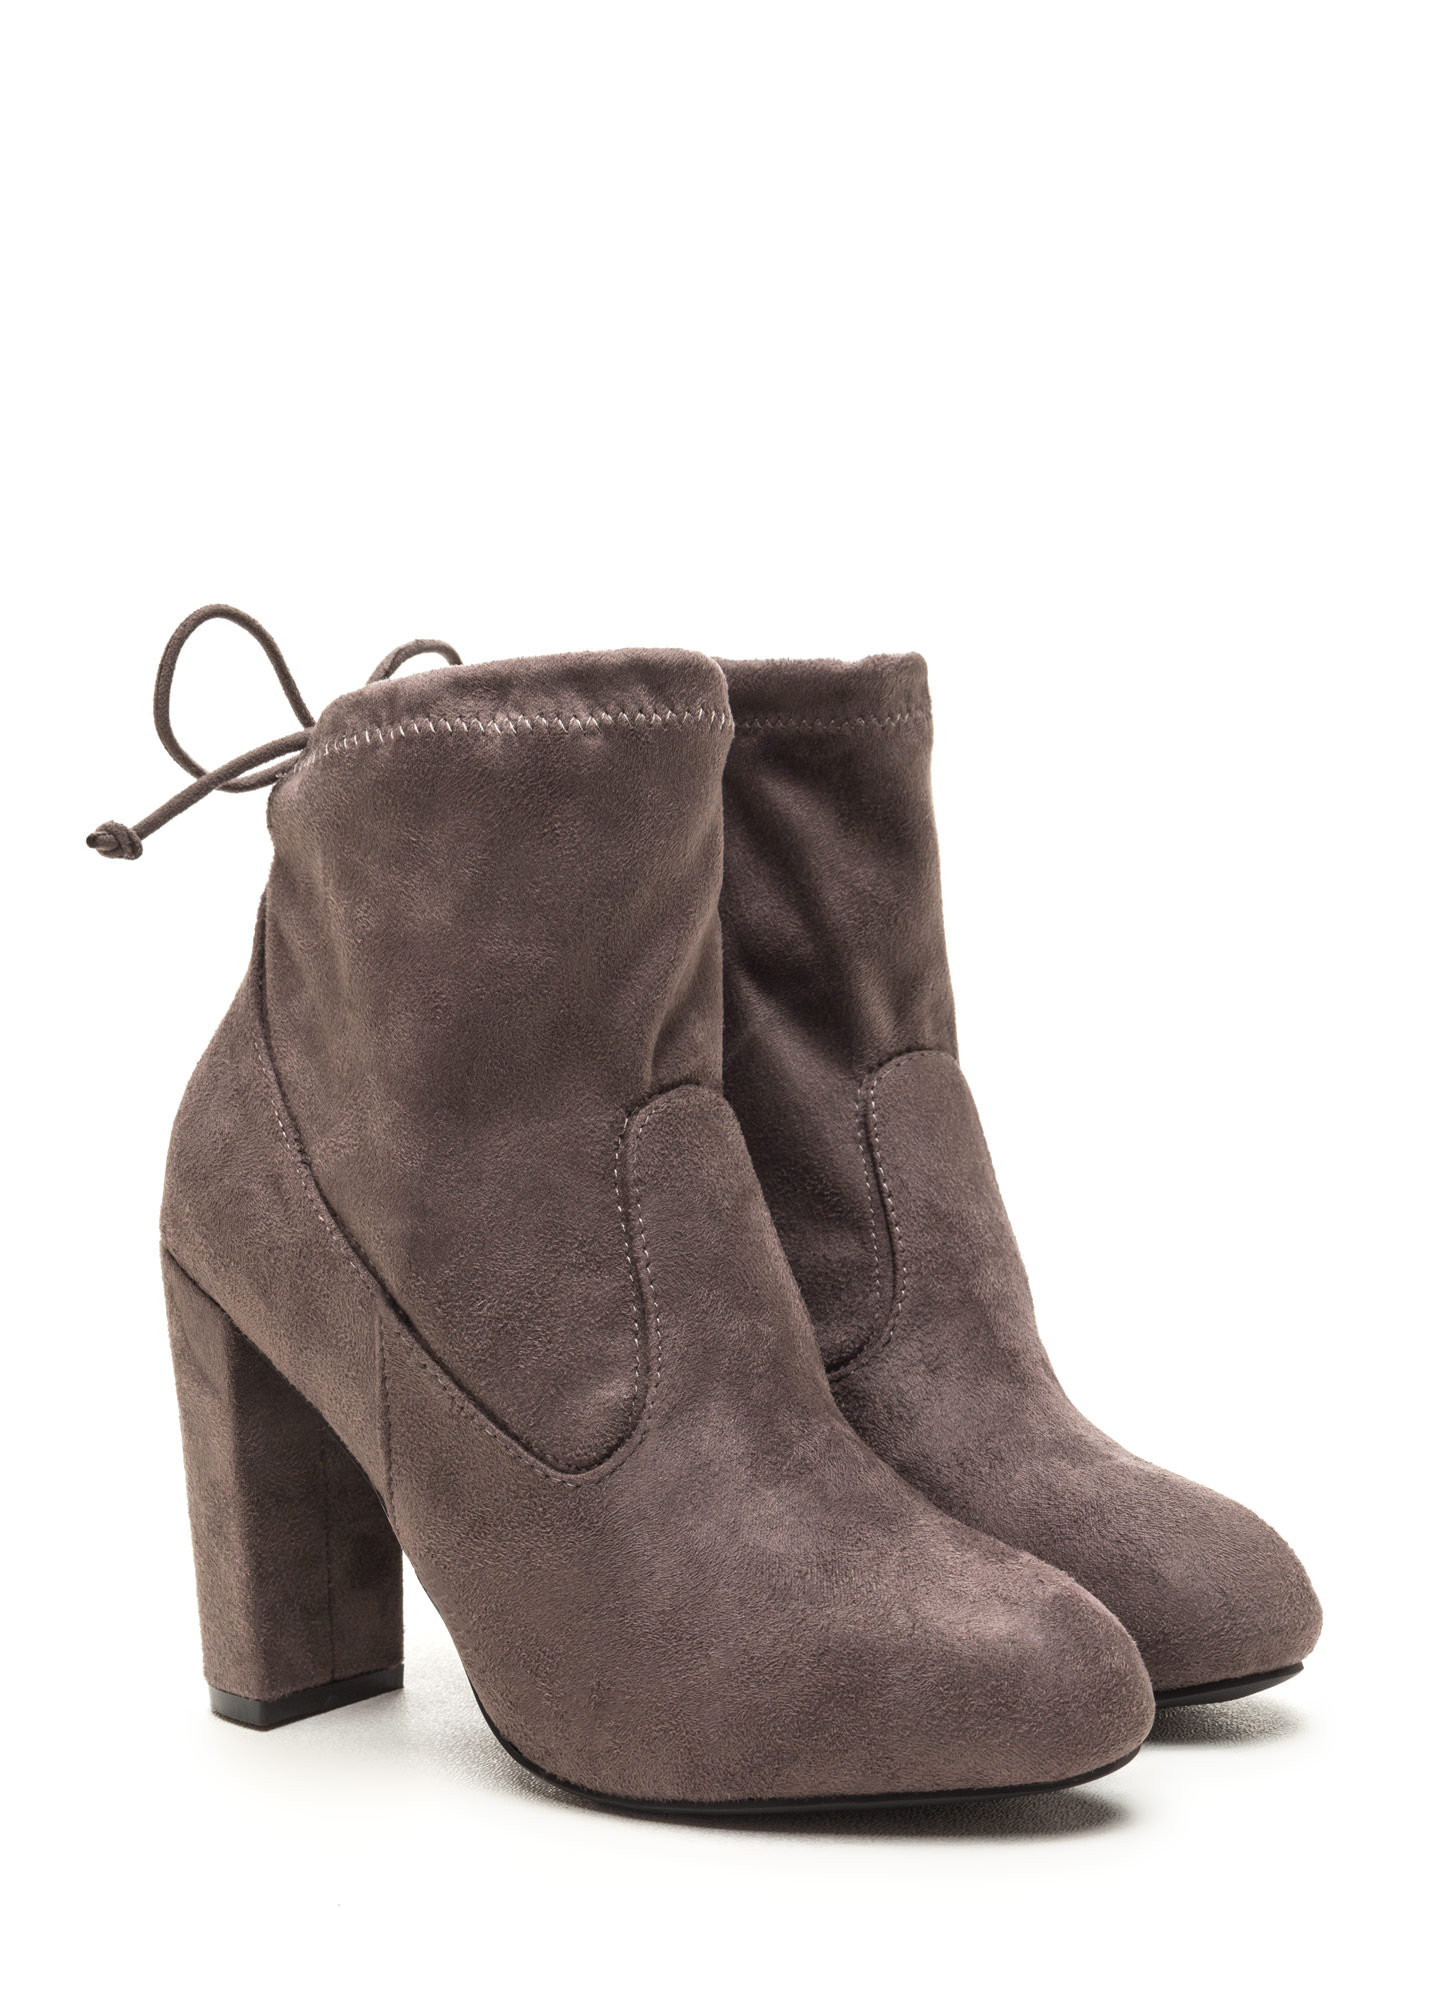 Key To Great Style Chunky Tied Booties GREY